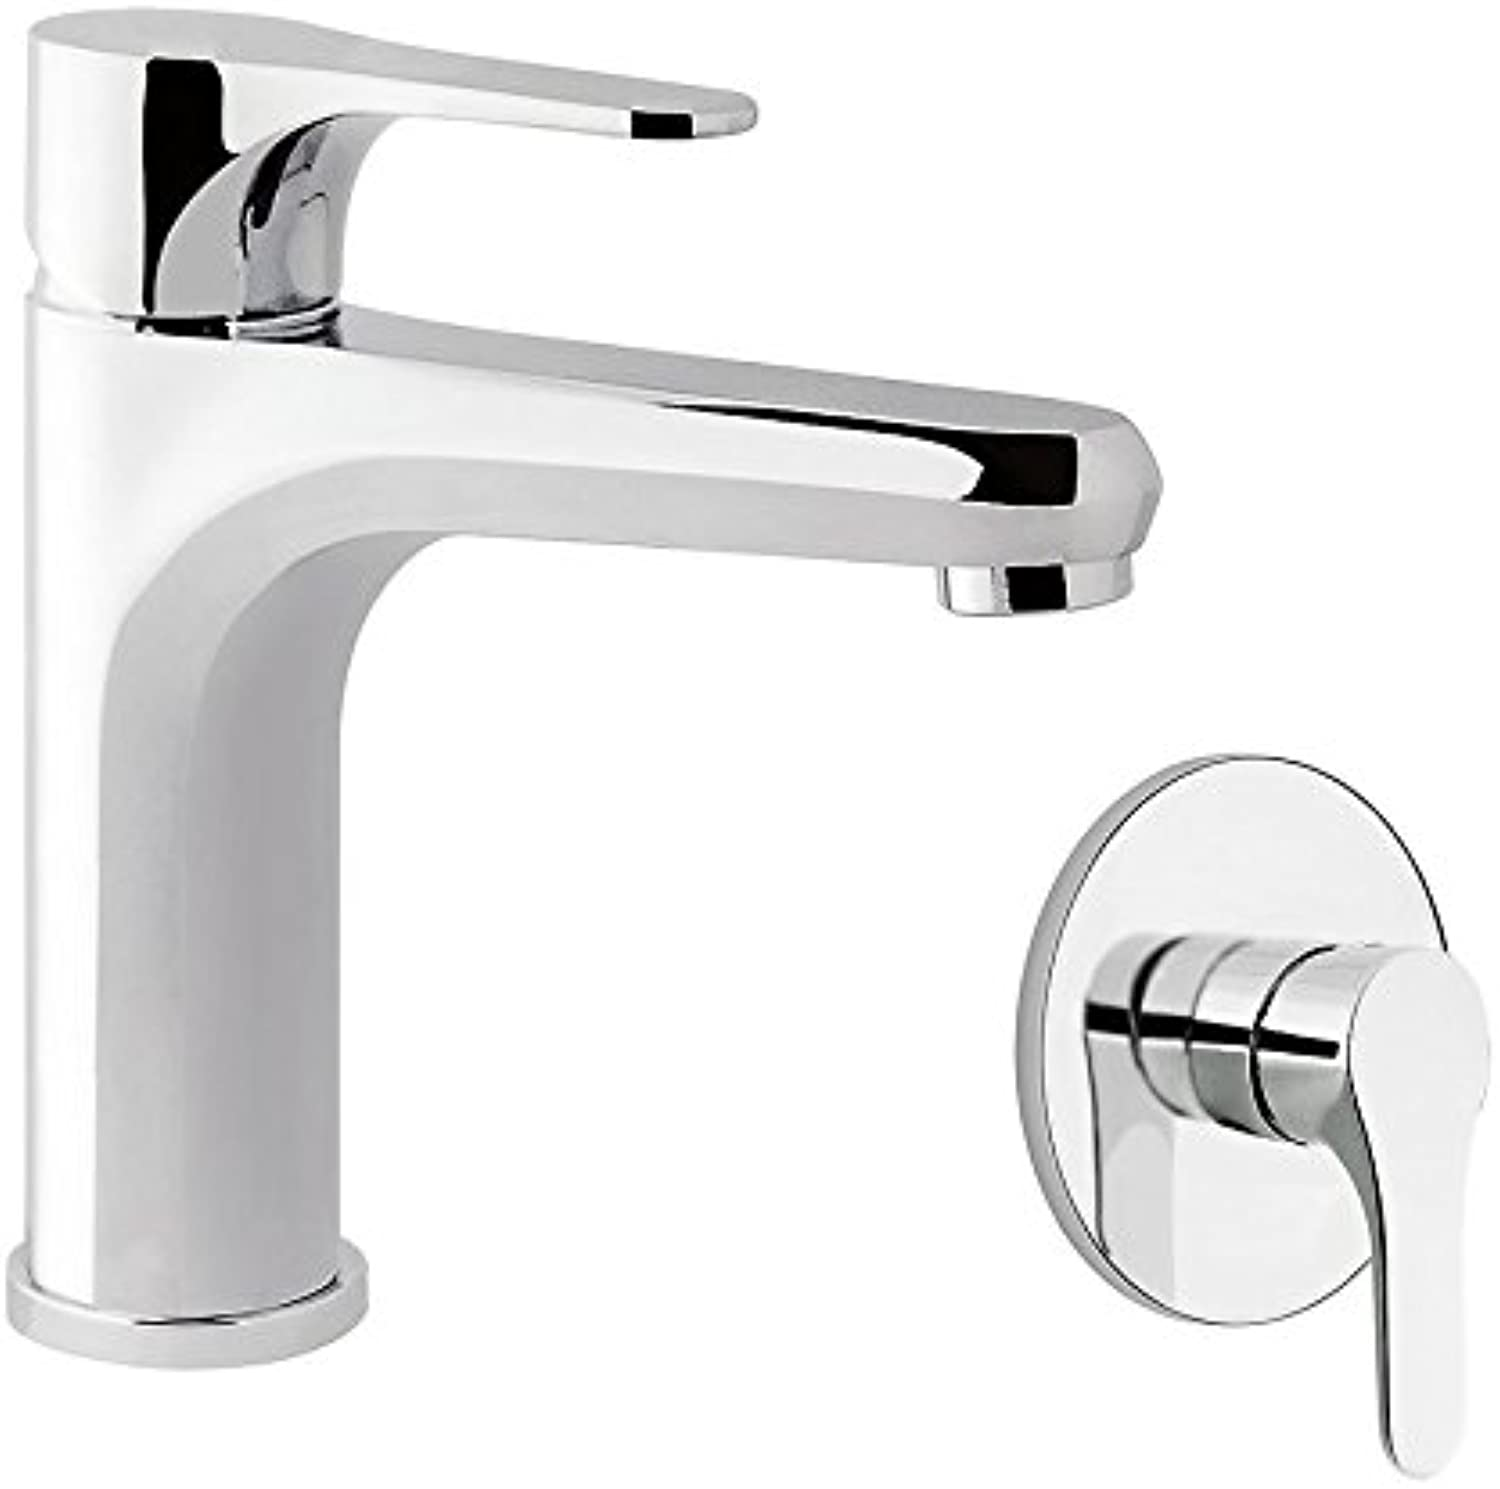 Group Built-in Lady and Single Lever Shower Single Lever Tap Lady, Drain 1? 1 4?with flexible, Made in